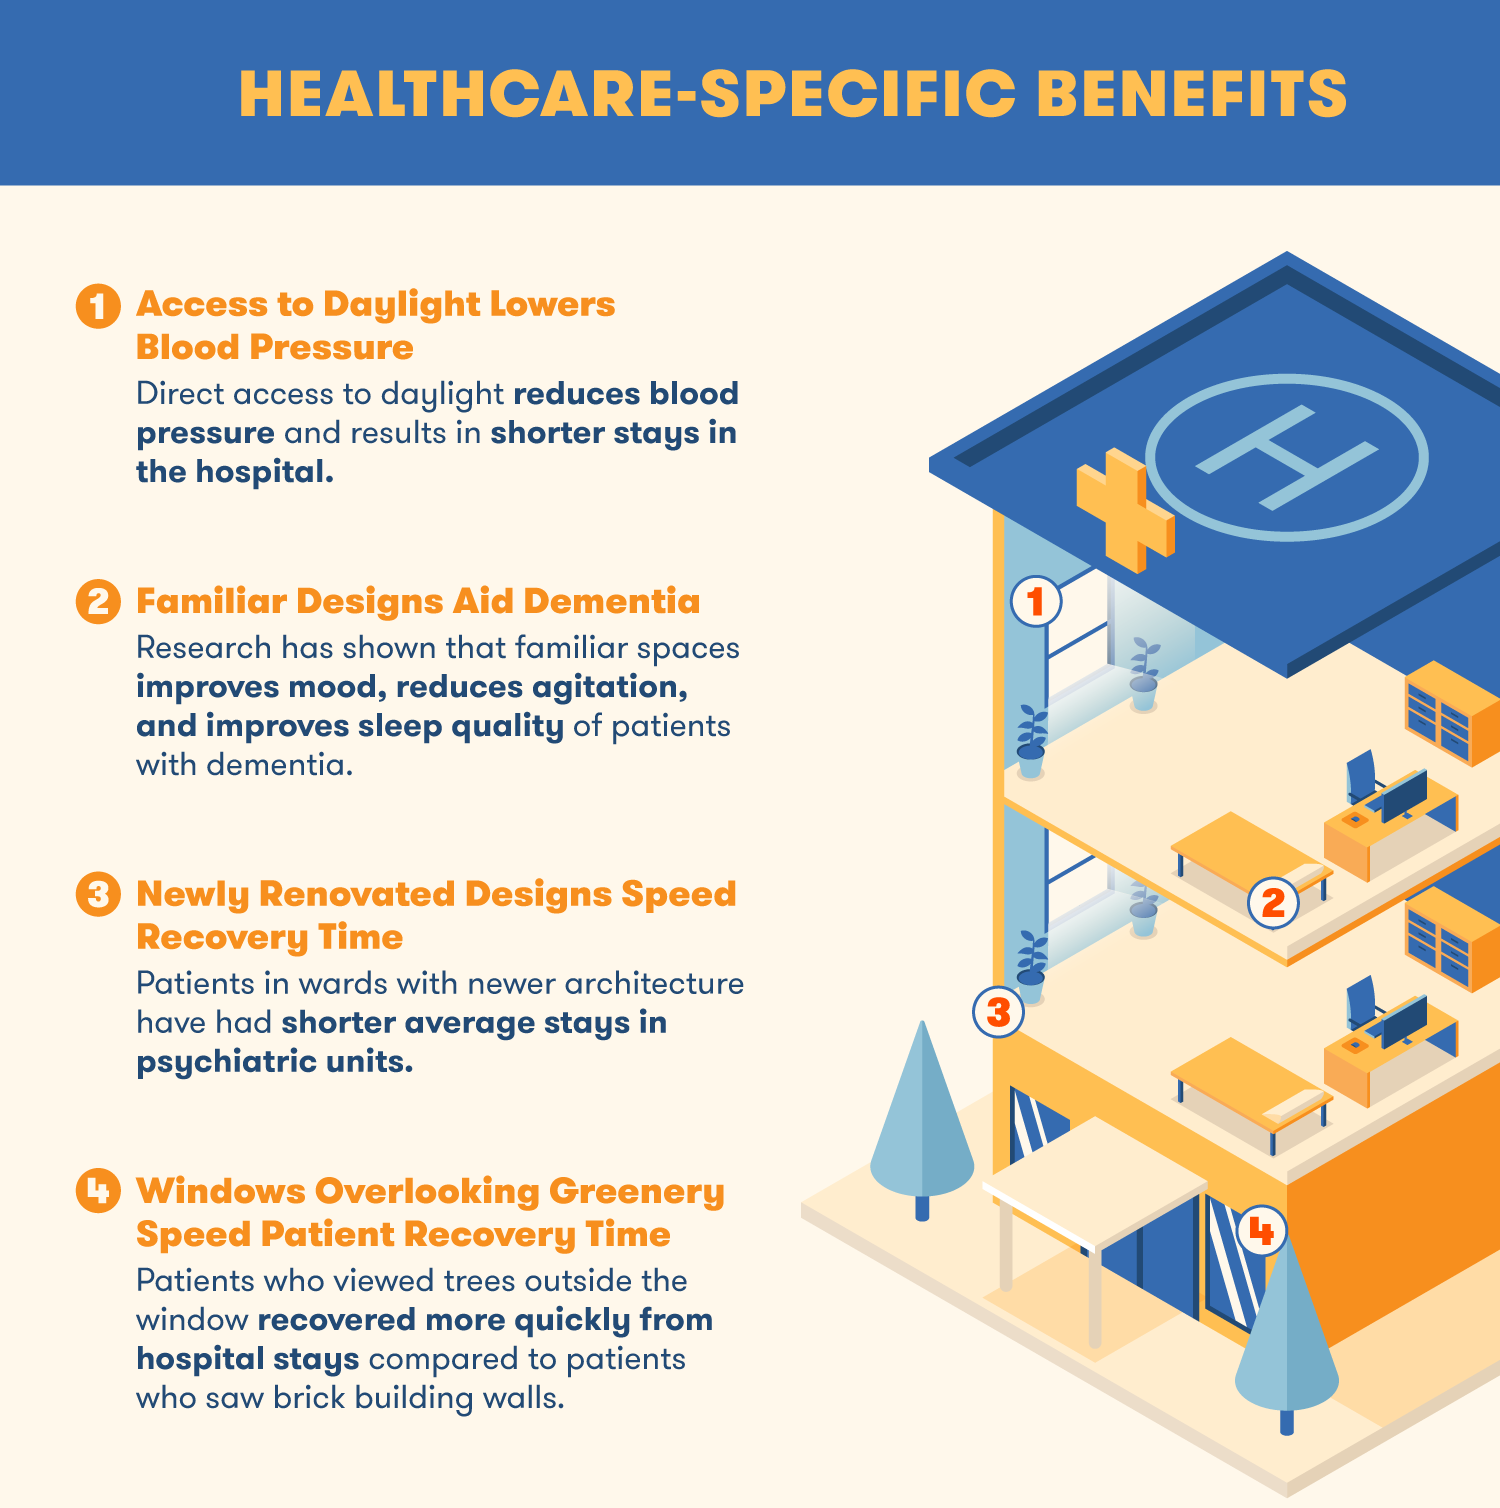 The benefits of building design on healthcare include lower blood pressure, aid in dementia and recovery time.